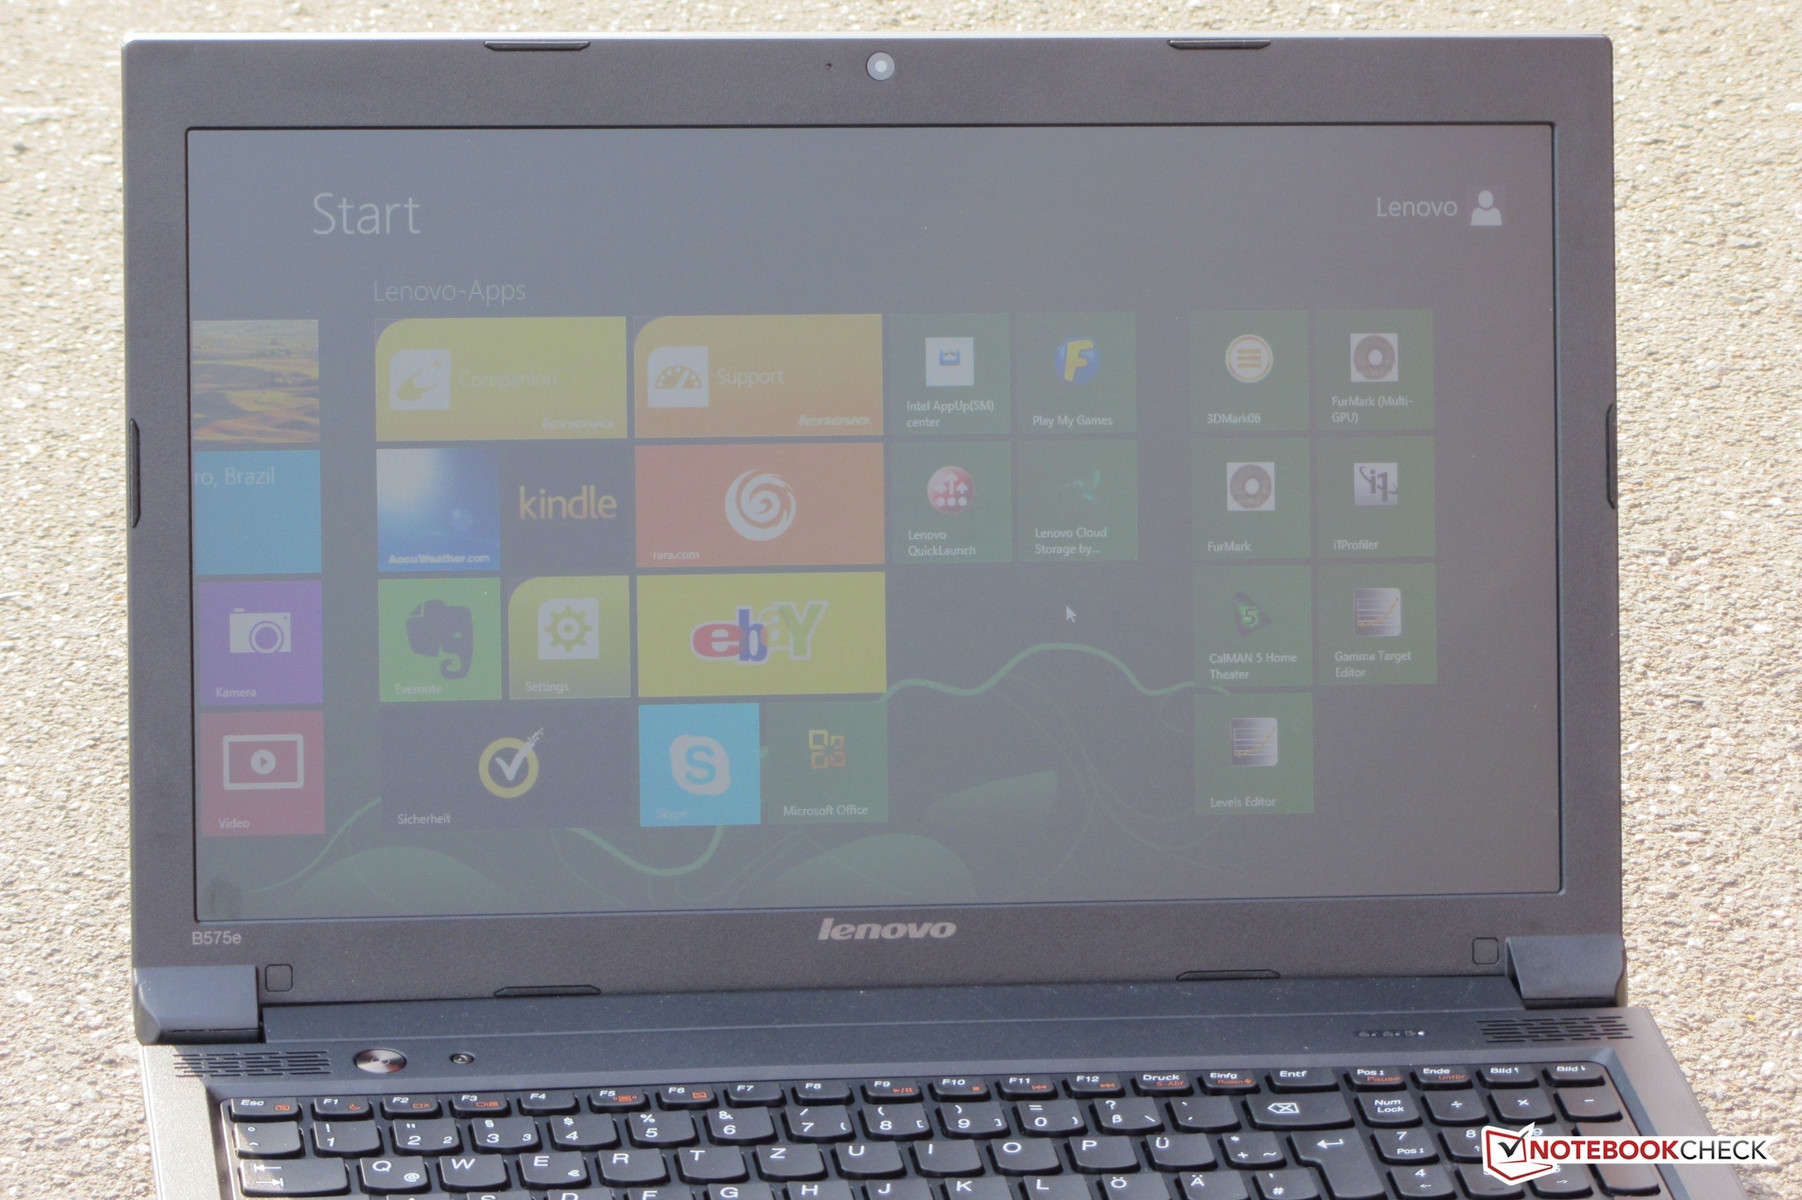 B575E LENOVO WINDOWS 8 X64 DRIVER